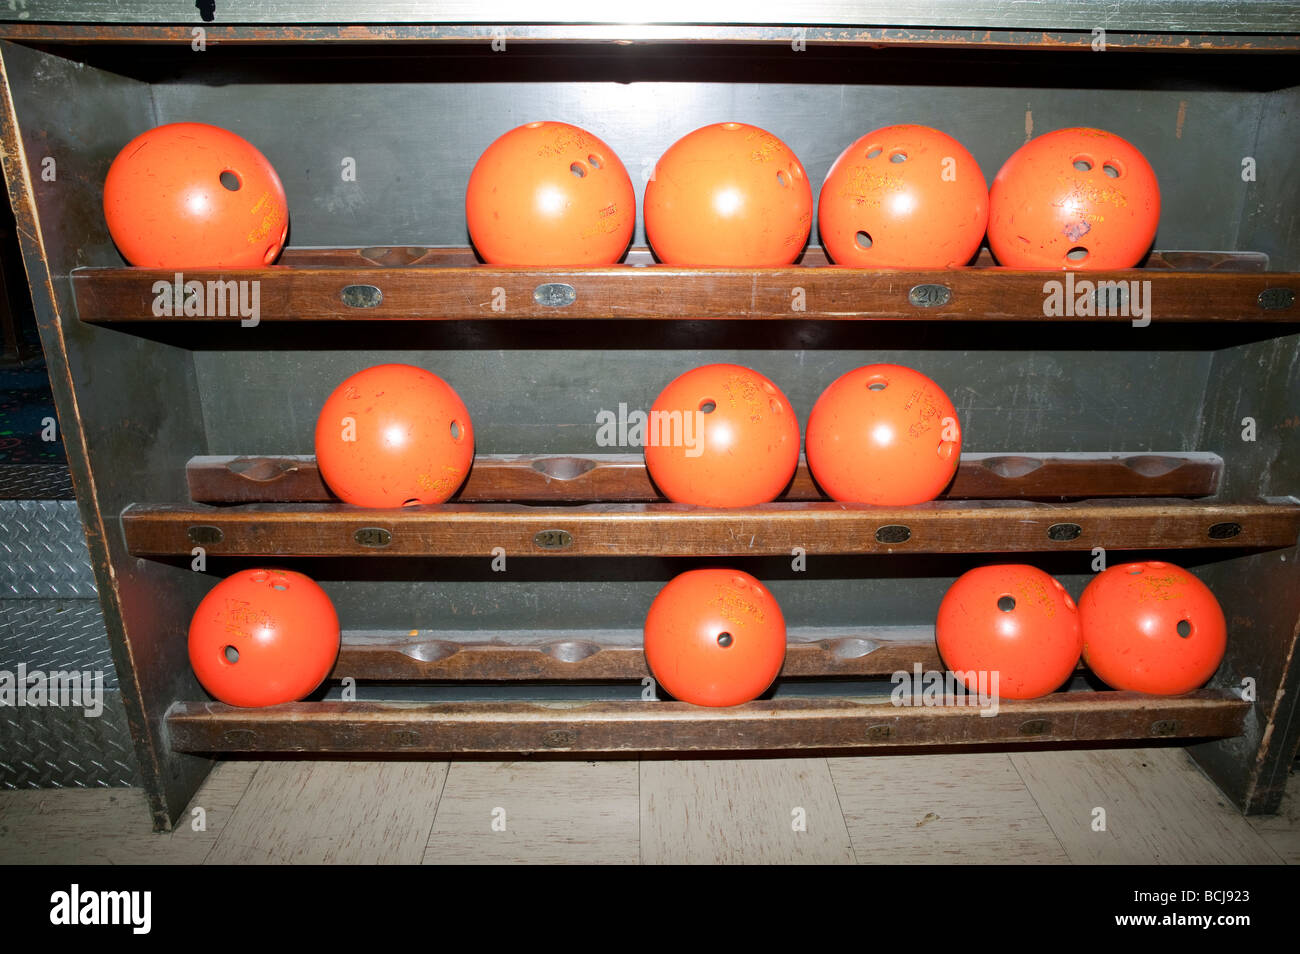 https www alamy com stock photo rack holding orange bowling balls at bowling alley 24988491 html